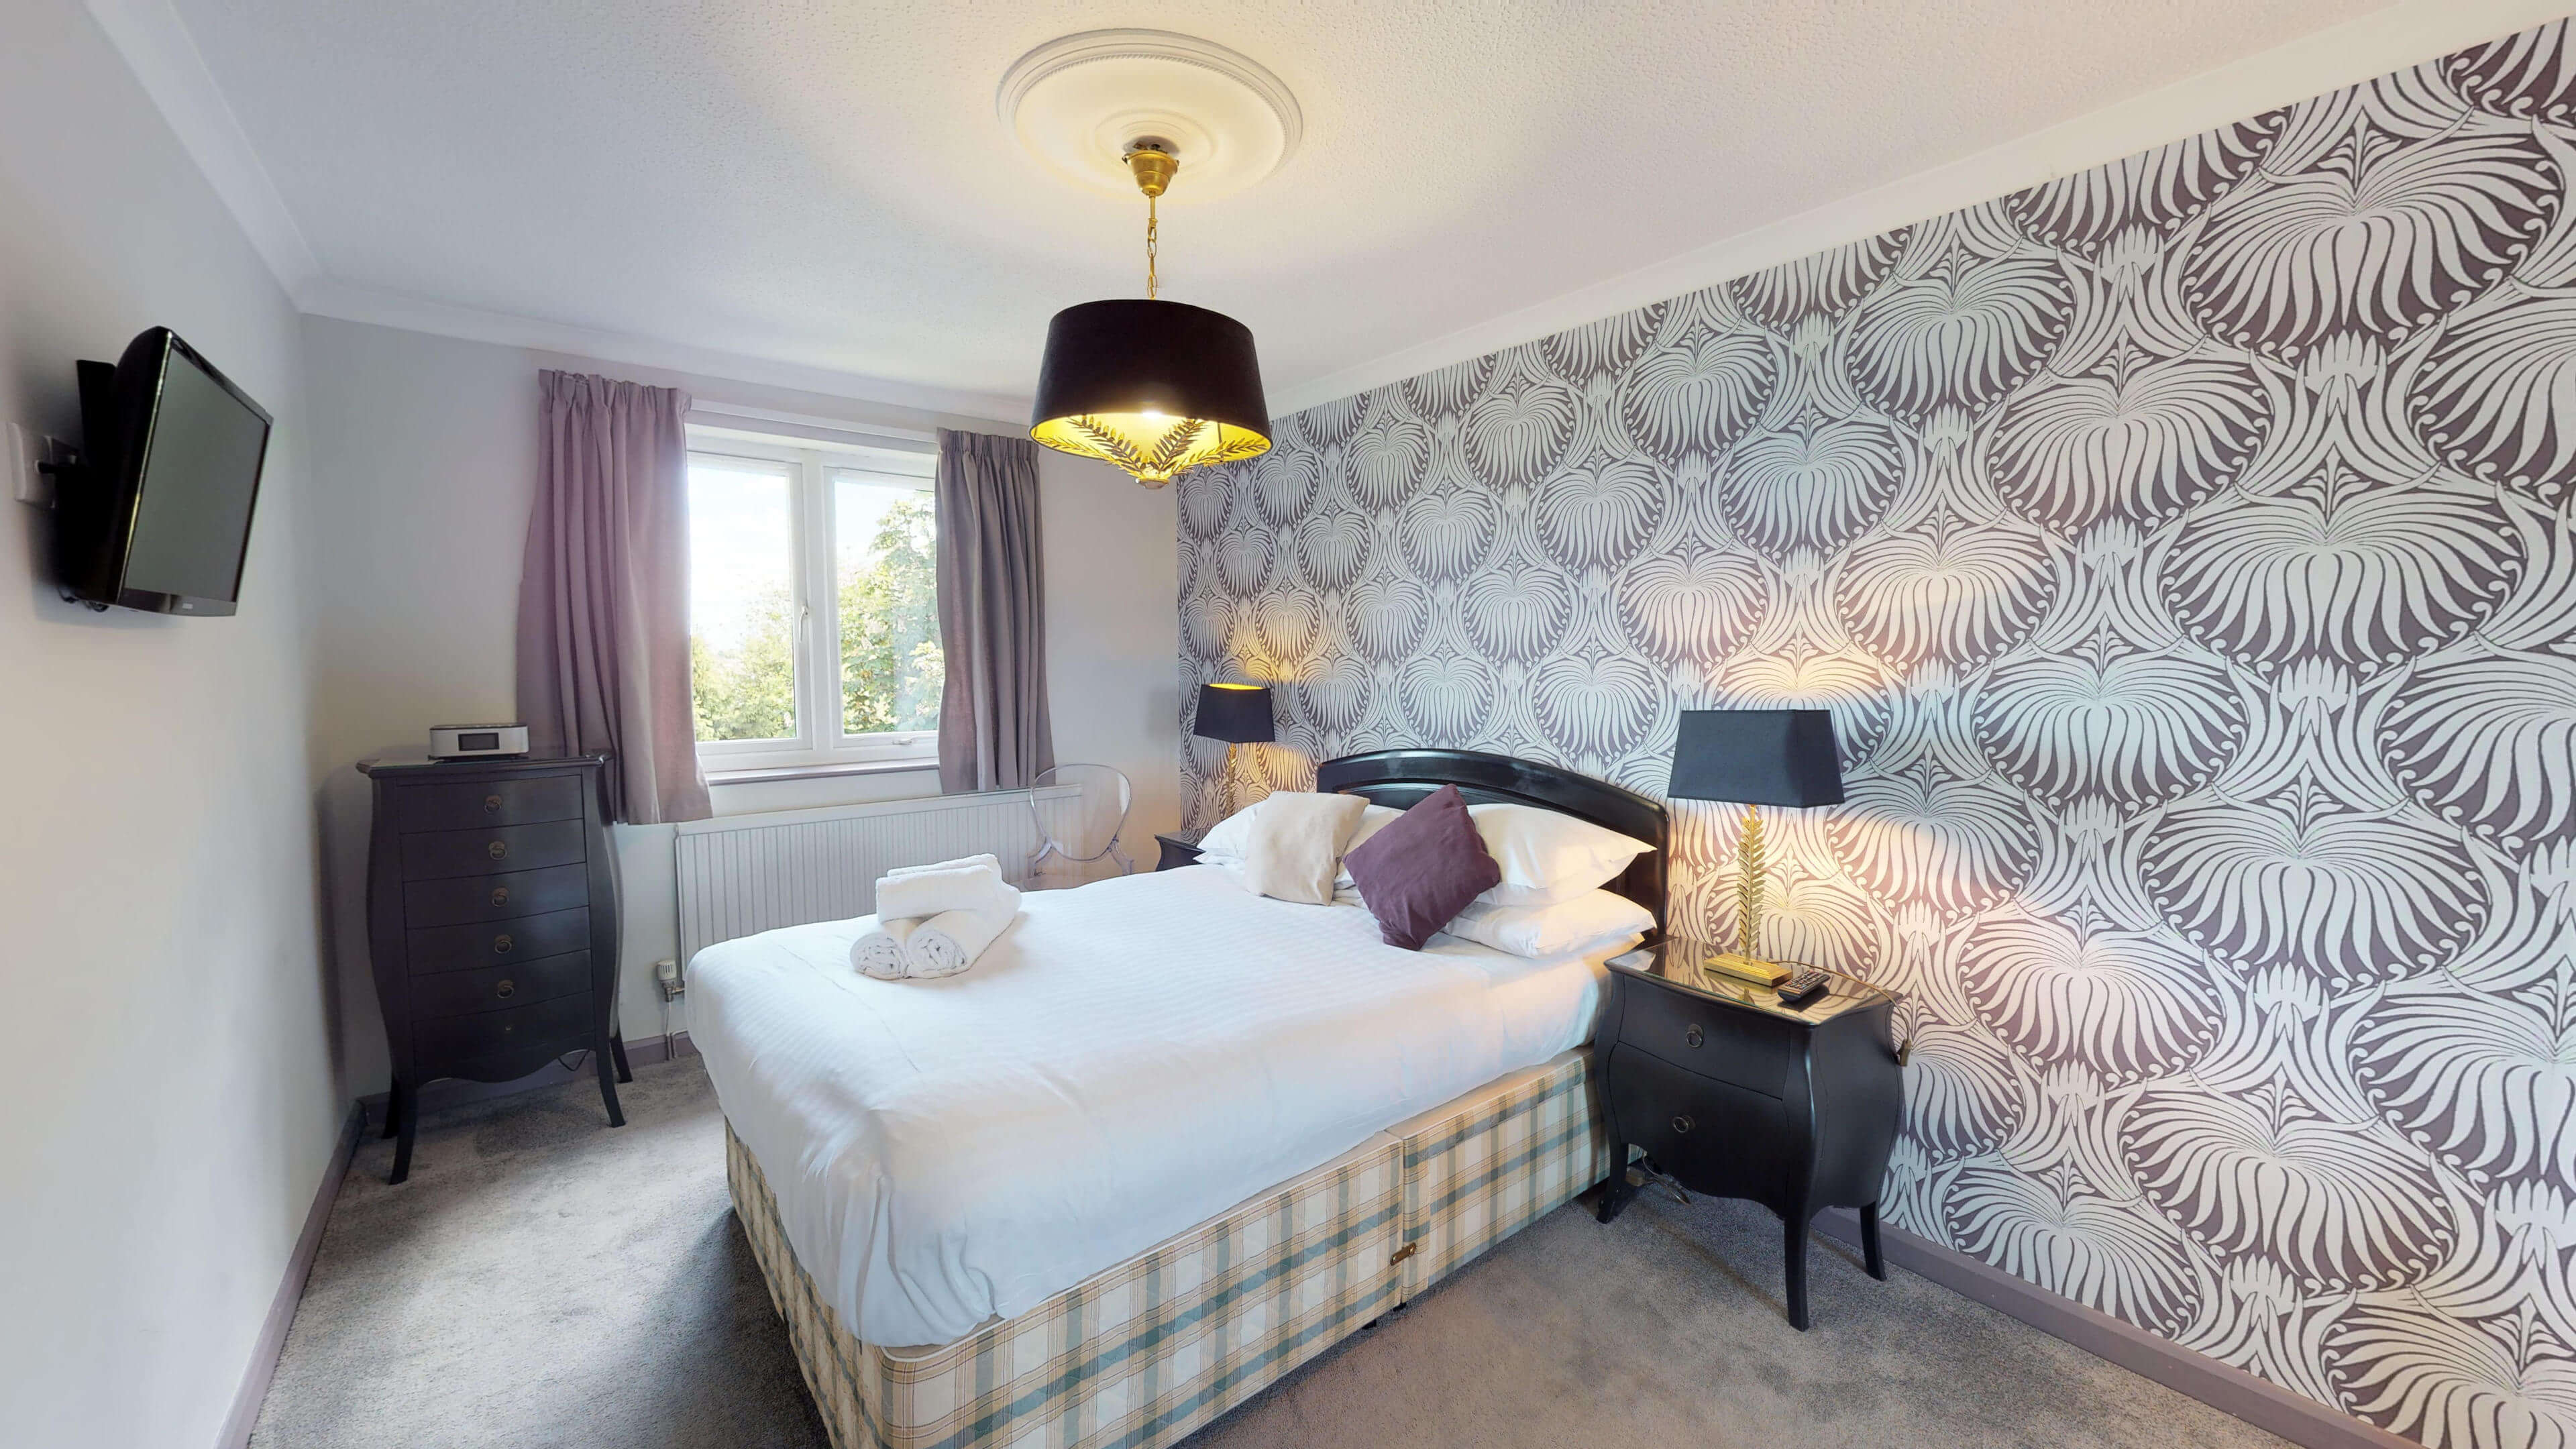 Short Stay Oxford The Firs Apartment 05232019 064919